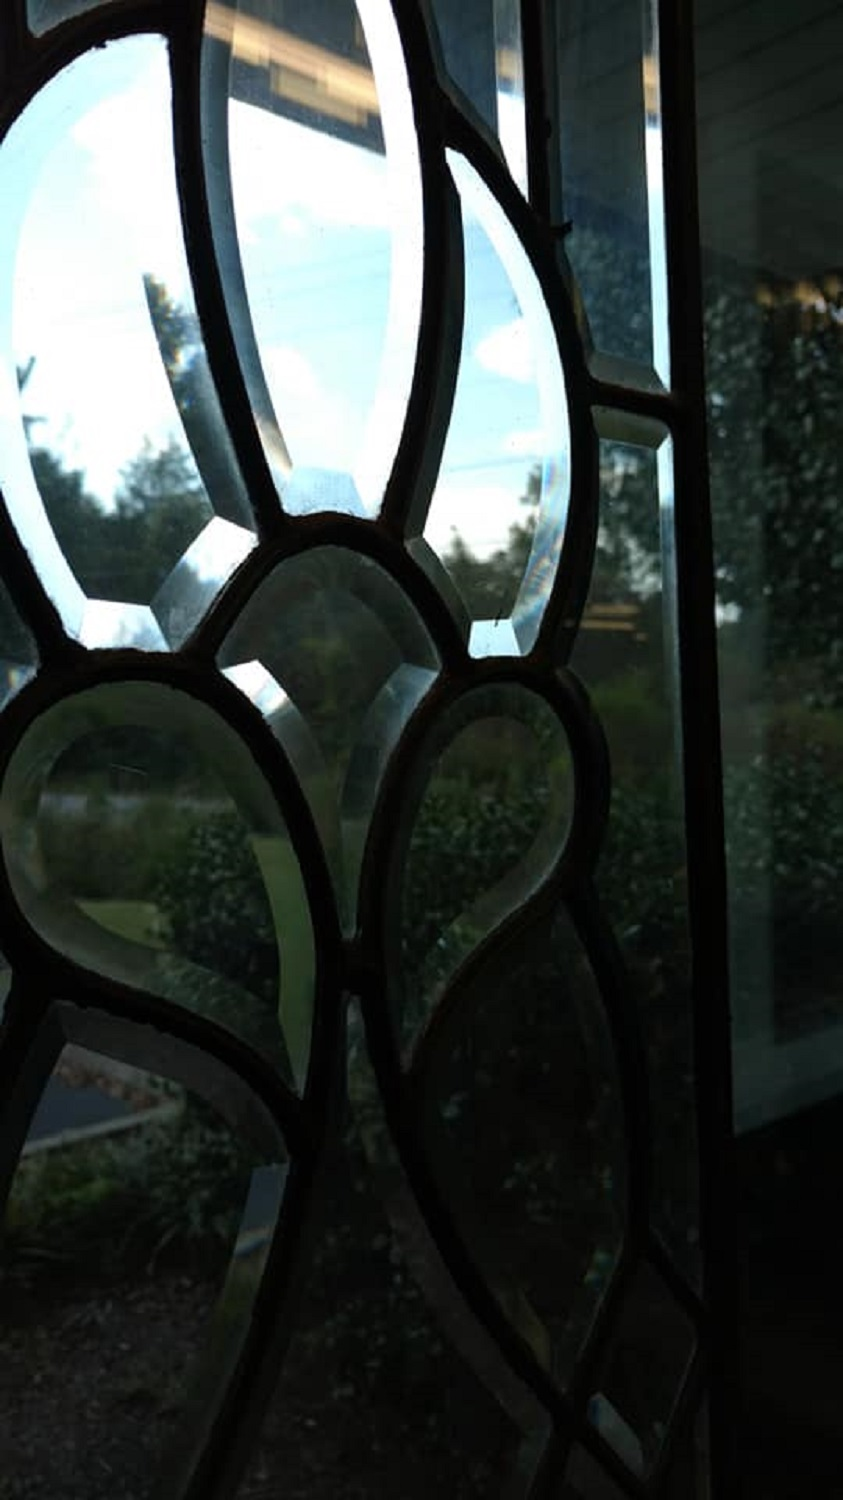 Leaded glass - beveled glass